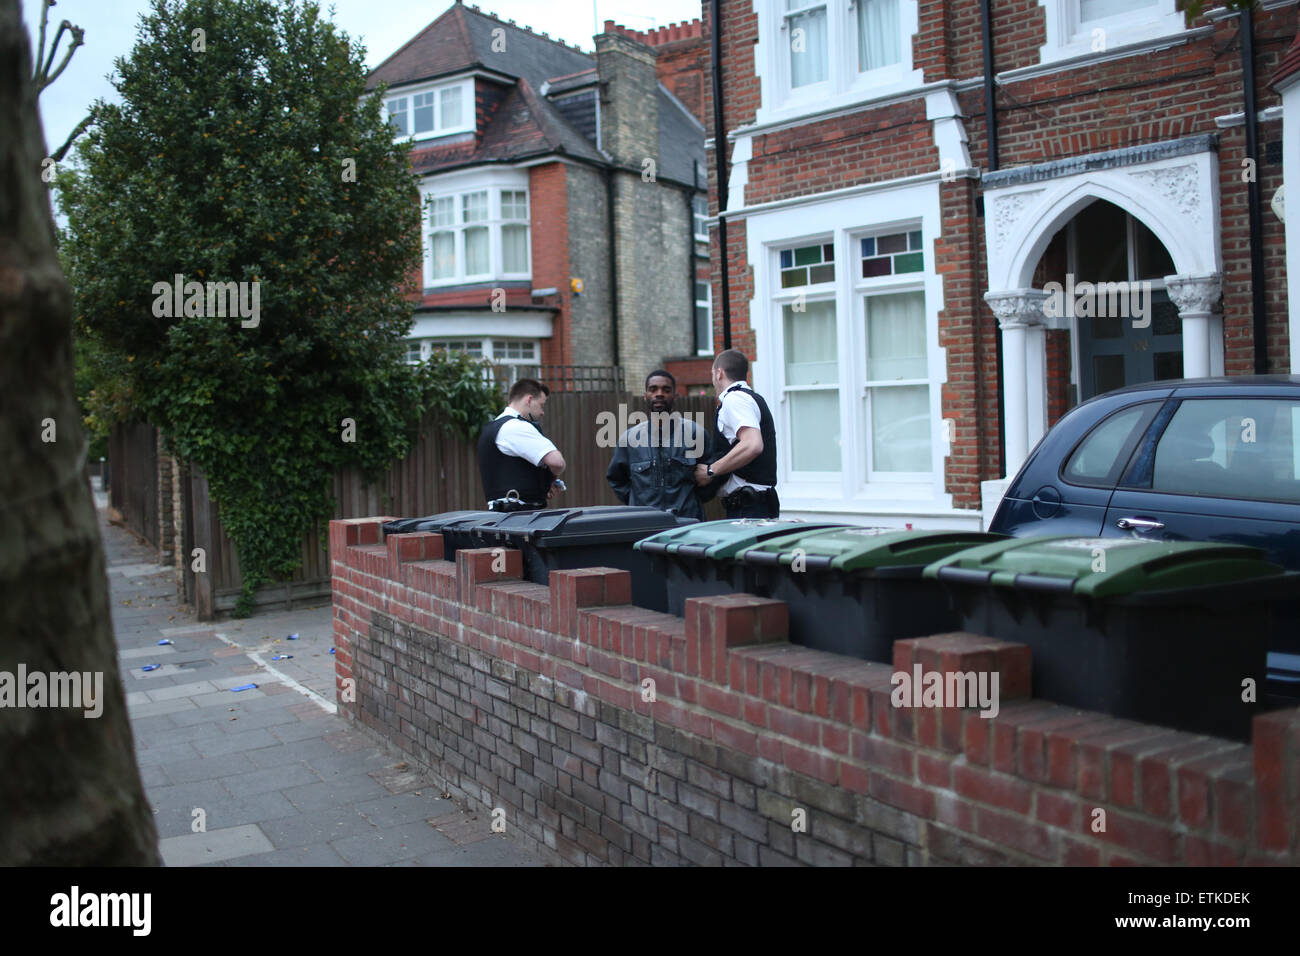 London, United Kingdom, 14 June 2015 - An unnamed male is held in cuffs by police following an alleged theft from - Stock Image